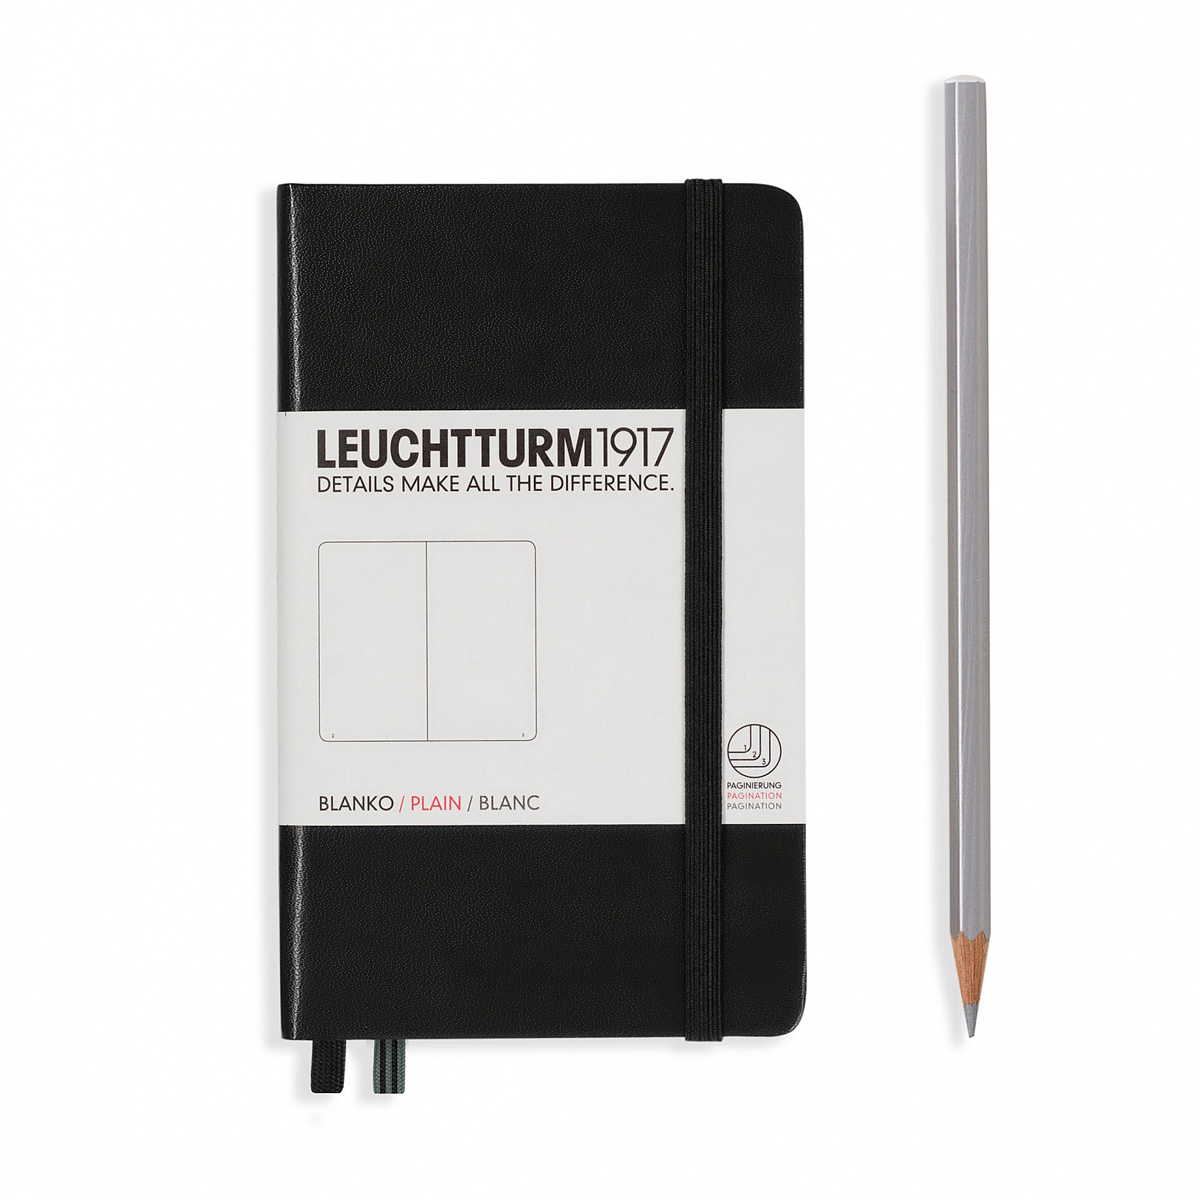 Leuchtturm classic pocket notebook hardcover 3.5 x 6 Inch